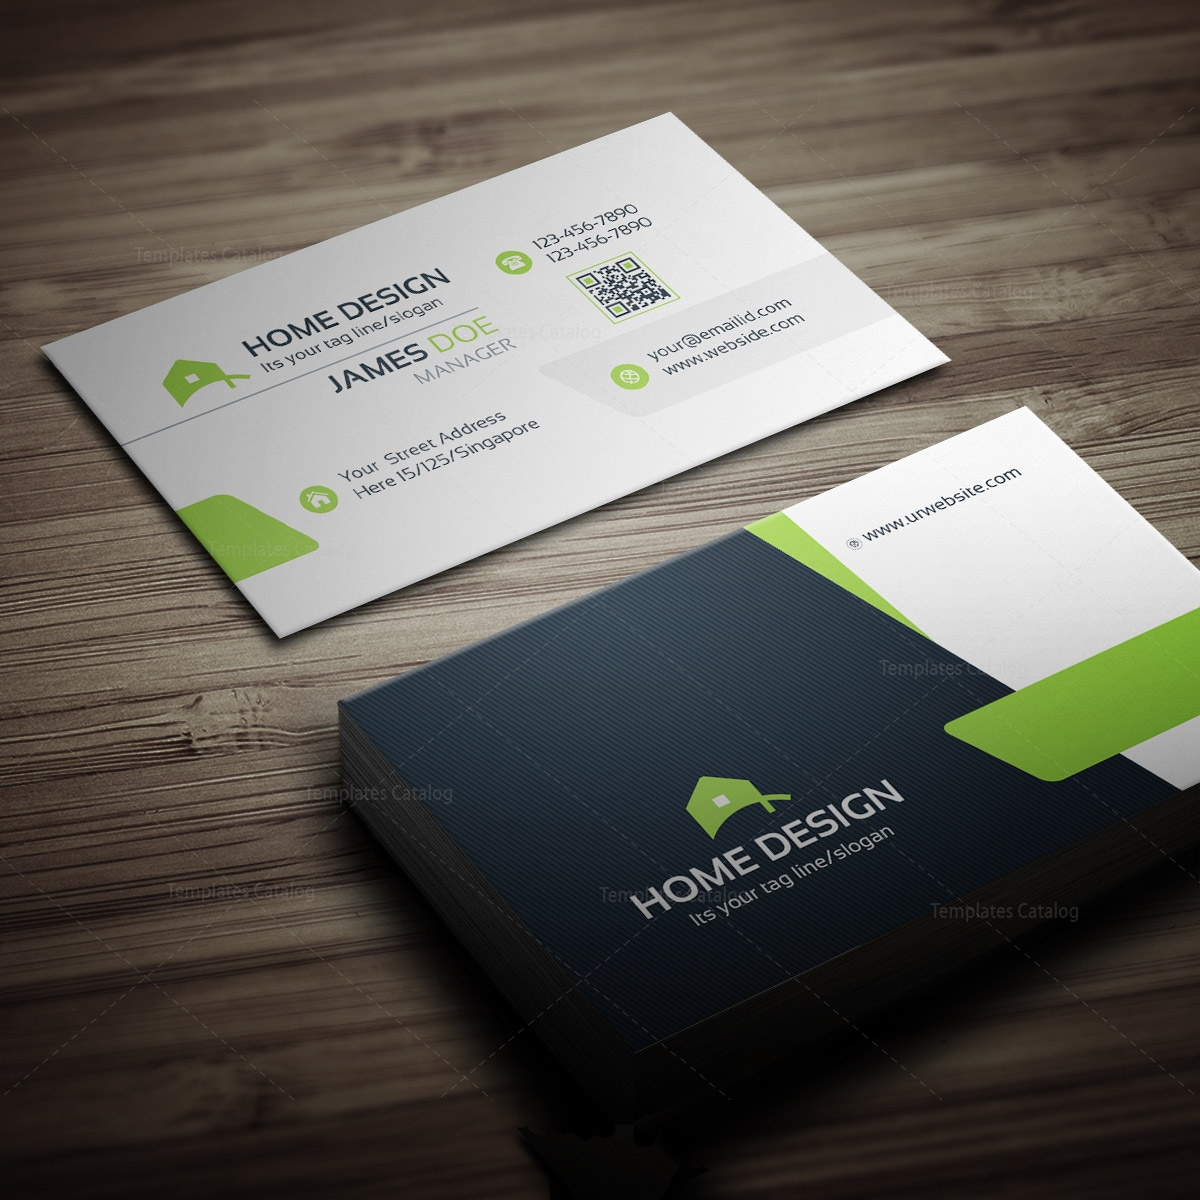 business card design ecosiahome design business card template 000258 template catalog